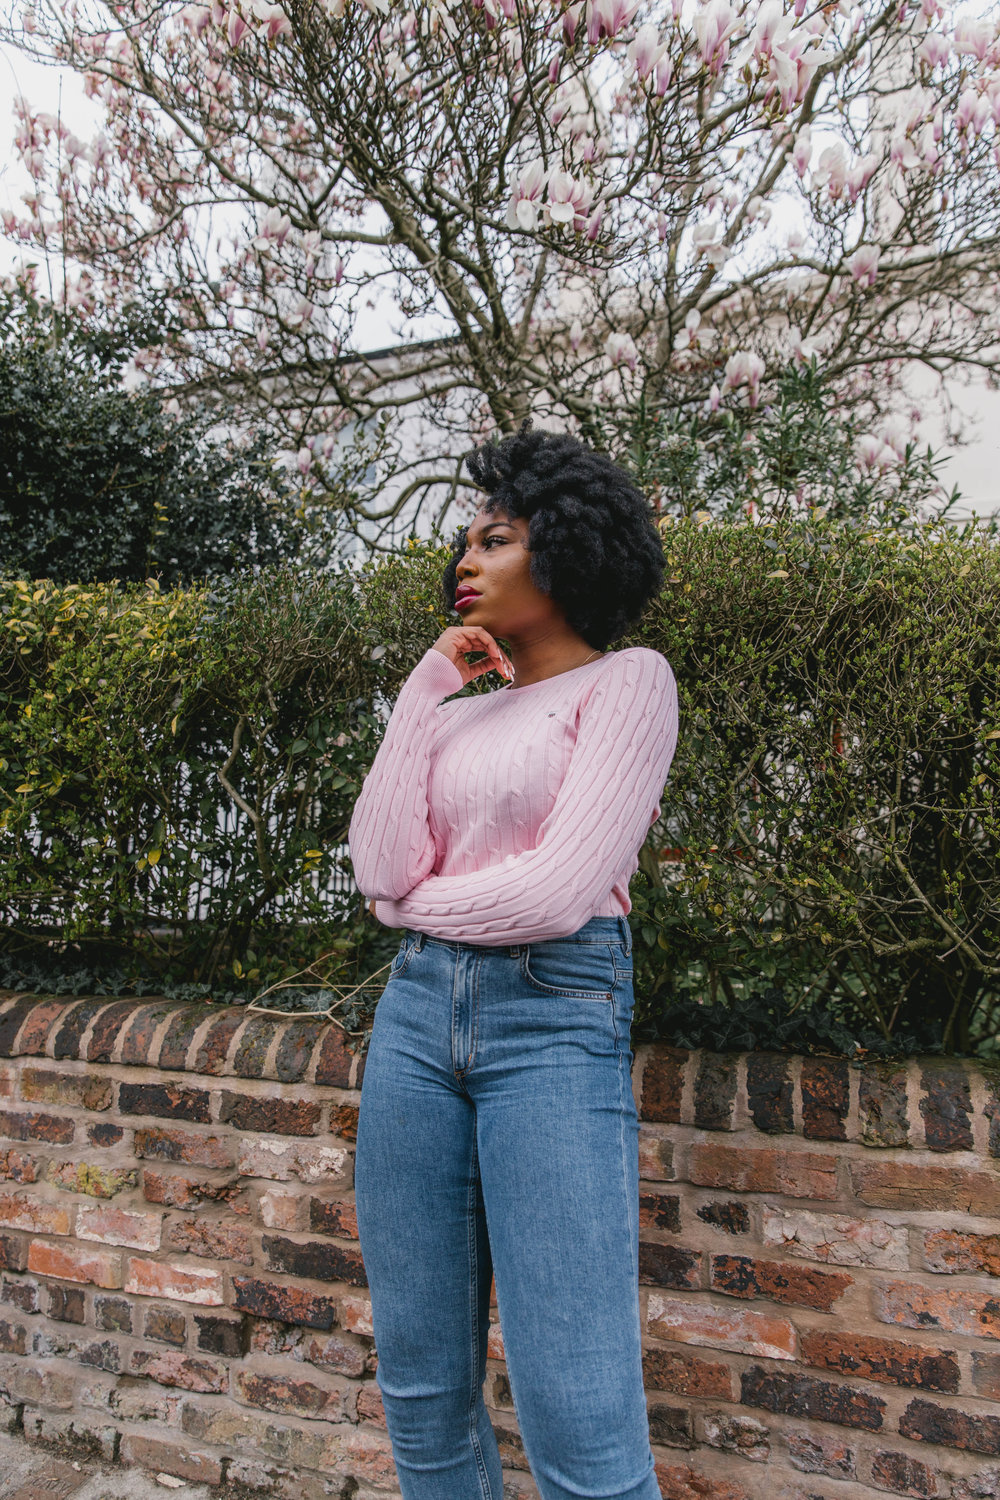 GANT Cotton Cable Knit Sweater - Spring Capsule Wardrobe